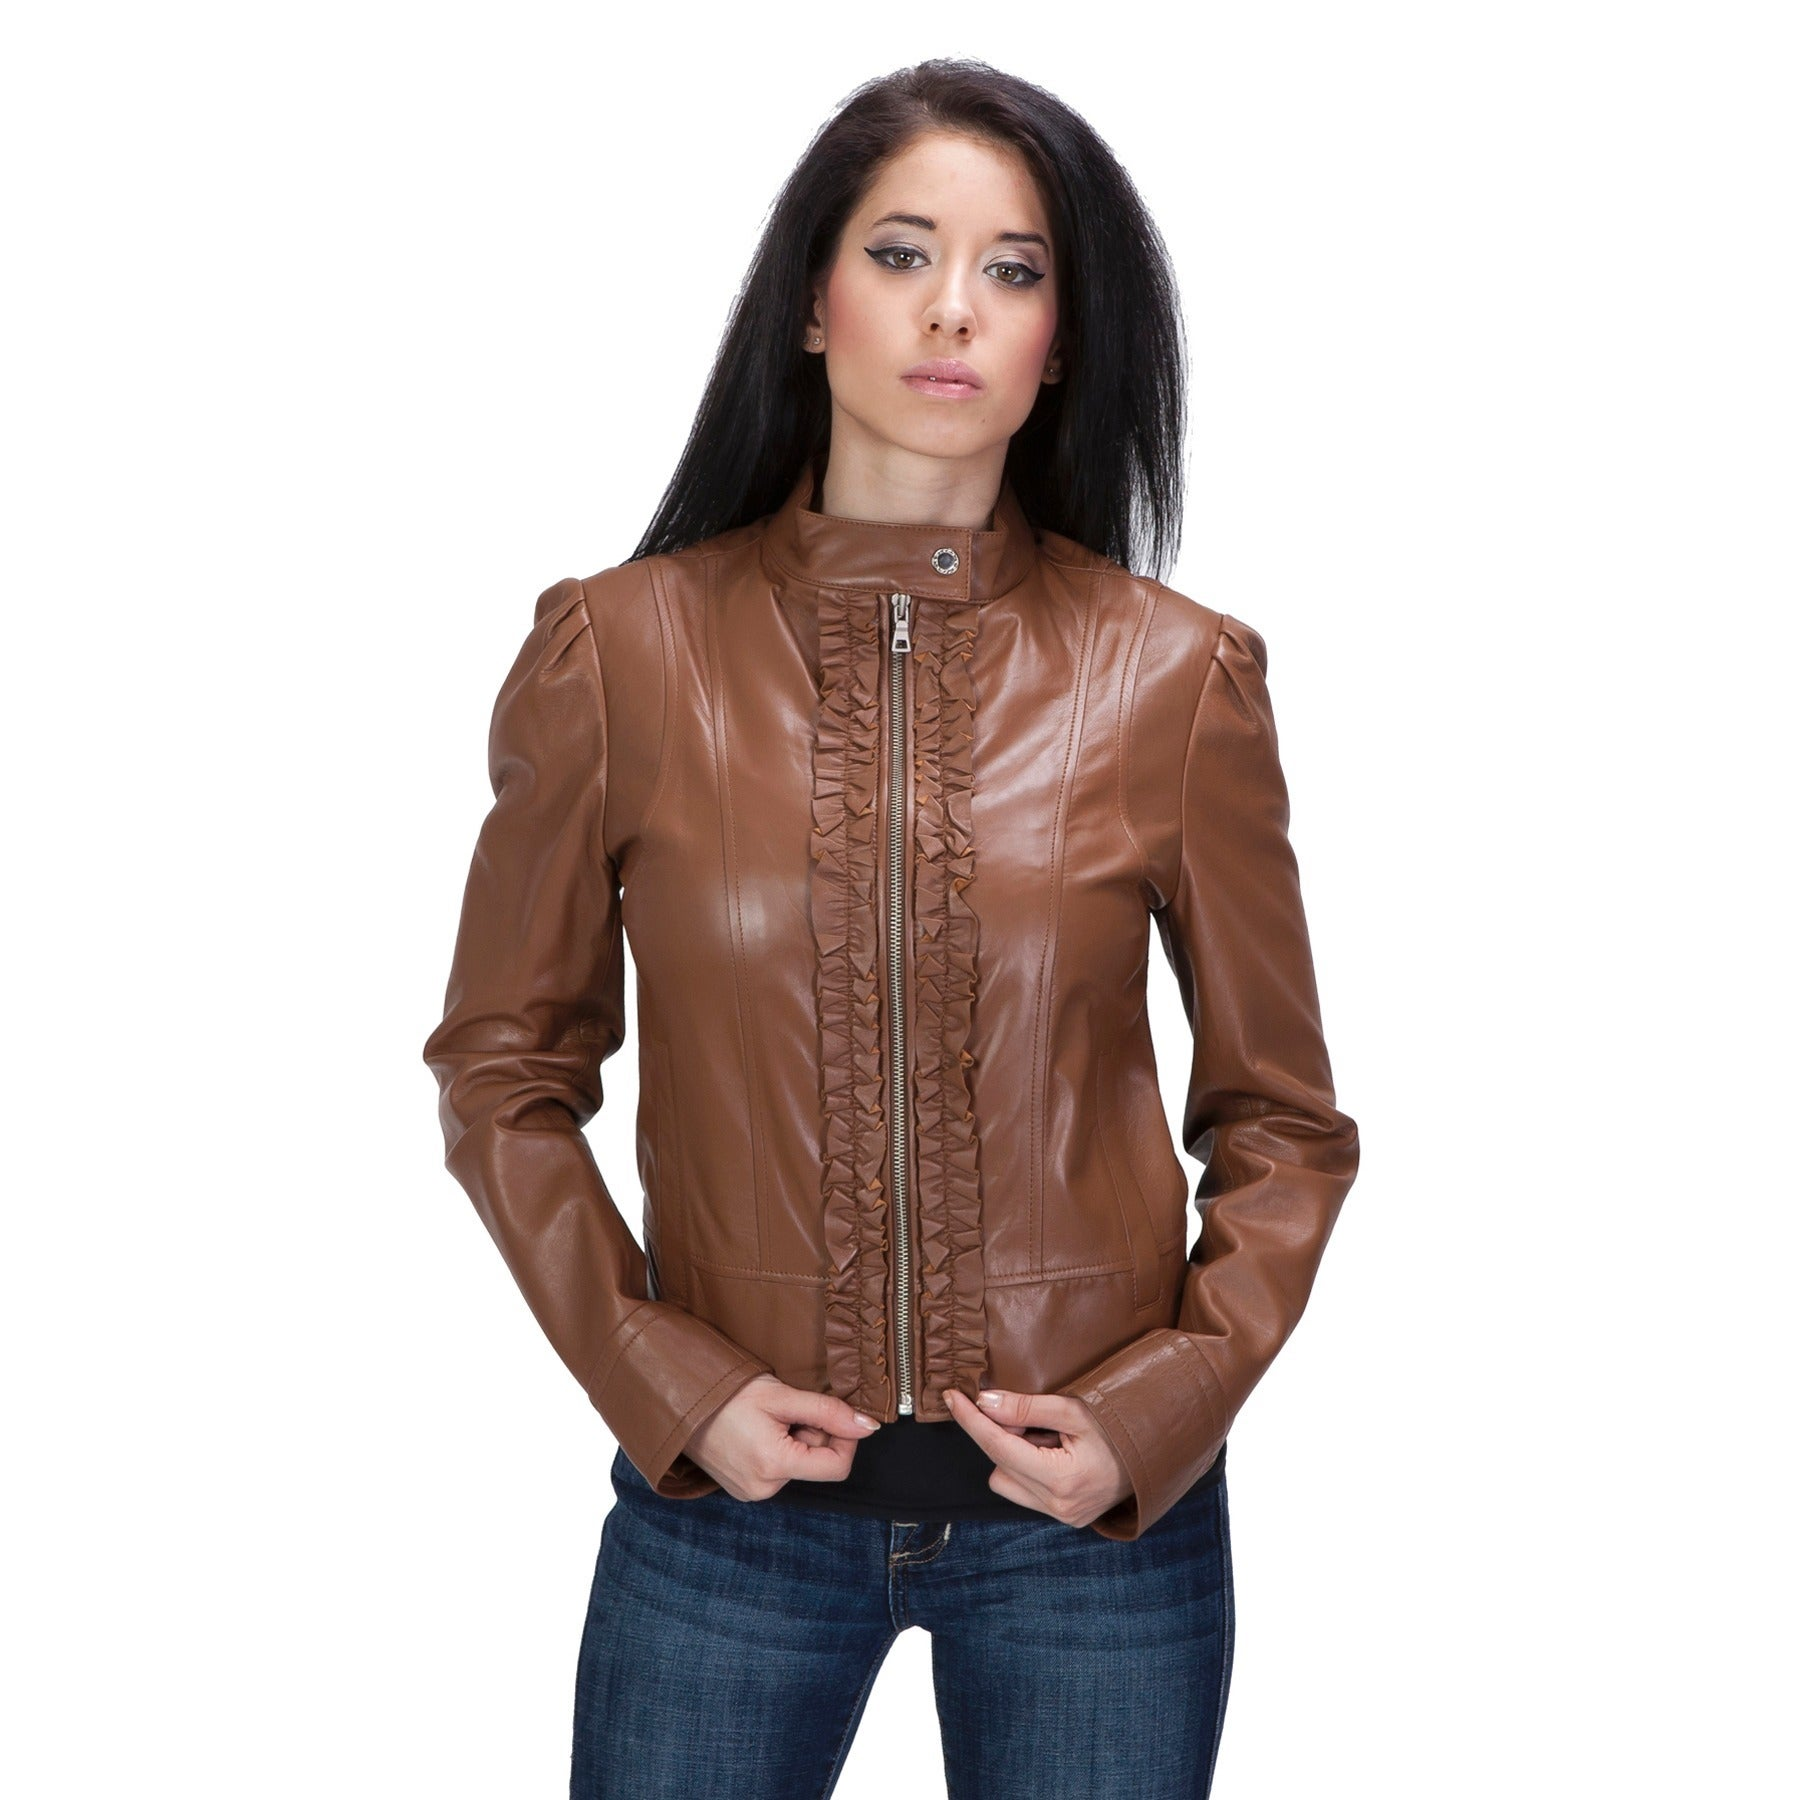 Womens brown leather jacket with ruffles